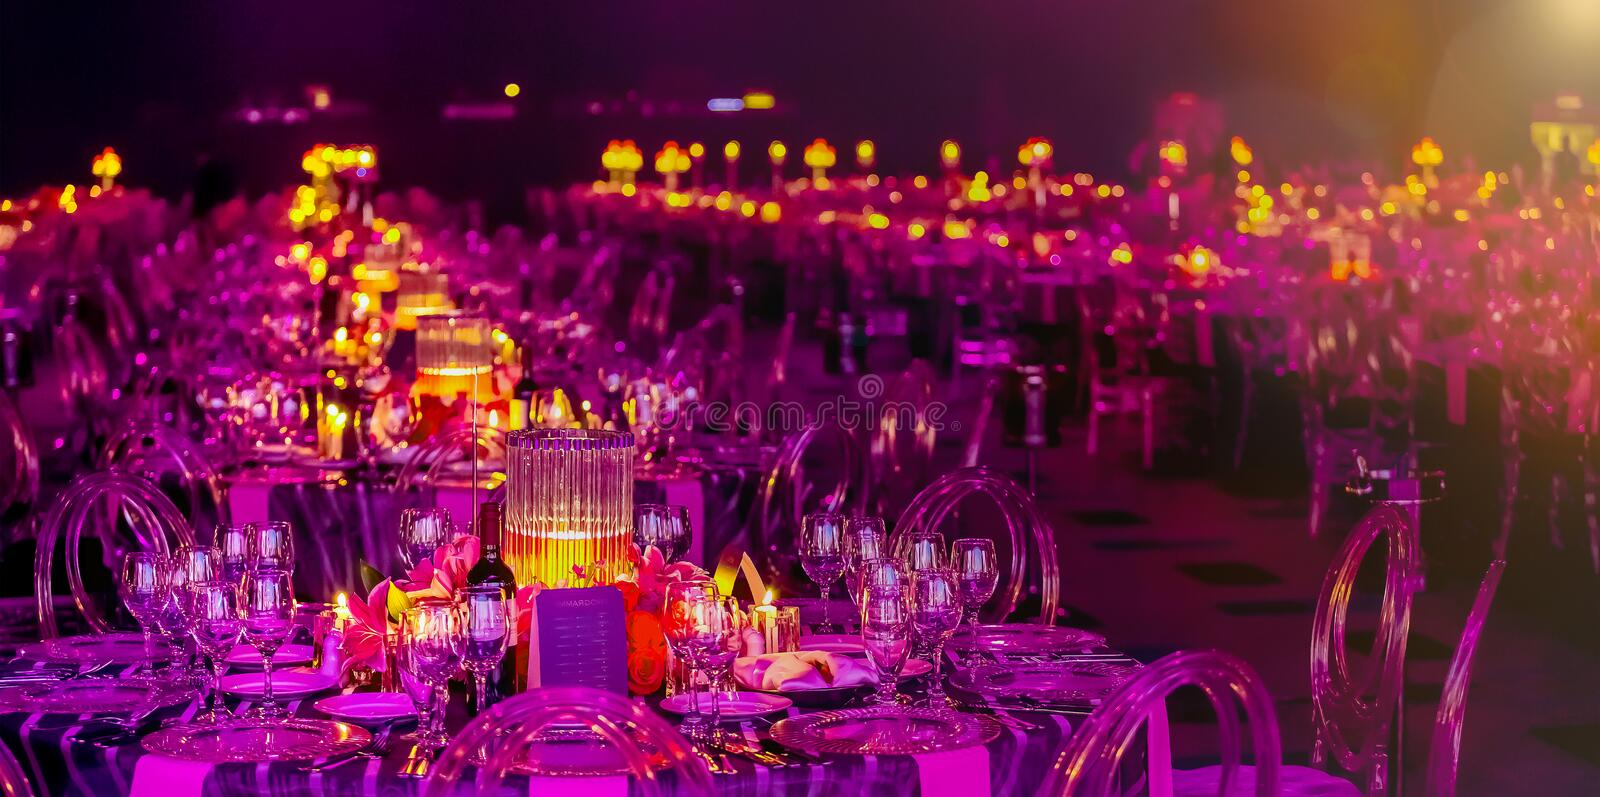 Pink Purple And White Party Decorations from thumbs.dreamstime.com